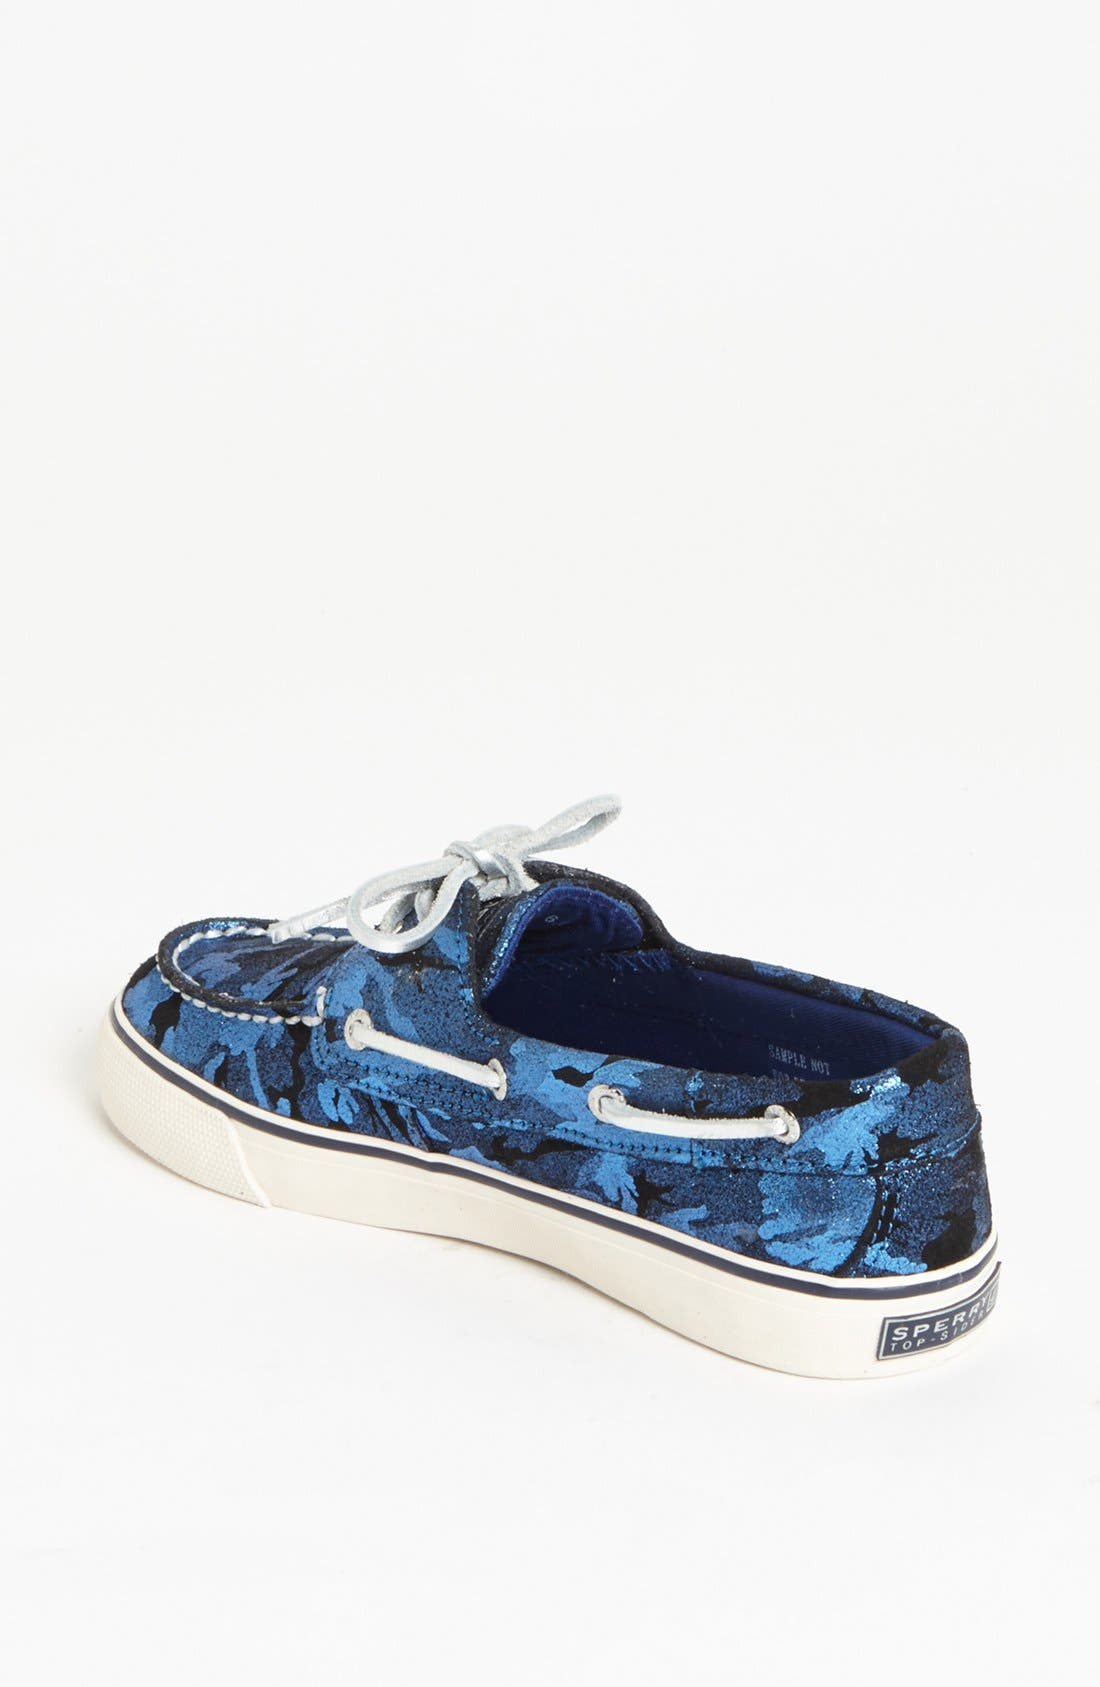 Top-Sider<sup>®</sup> 'Bahama' Sequined Boat Shoe,                             Alternate thumbnail 67, color,